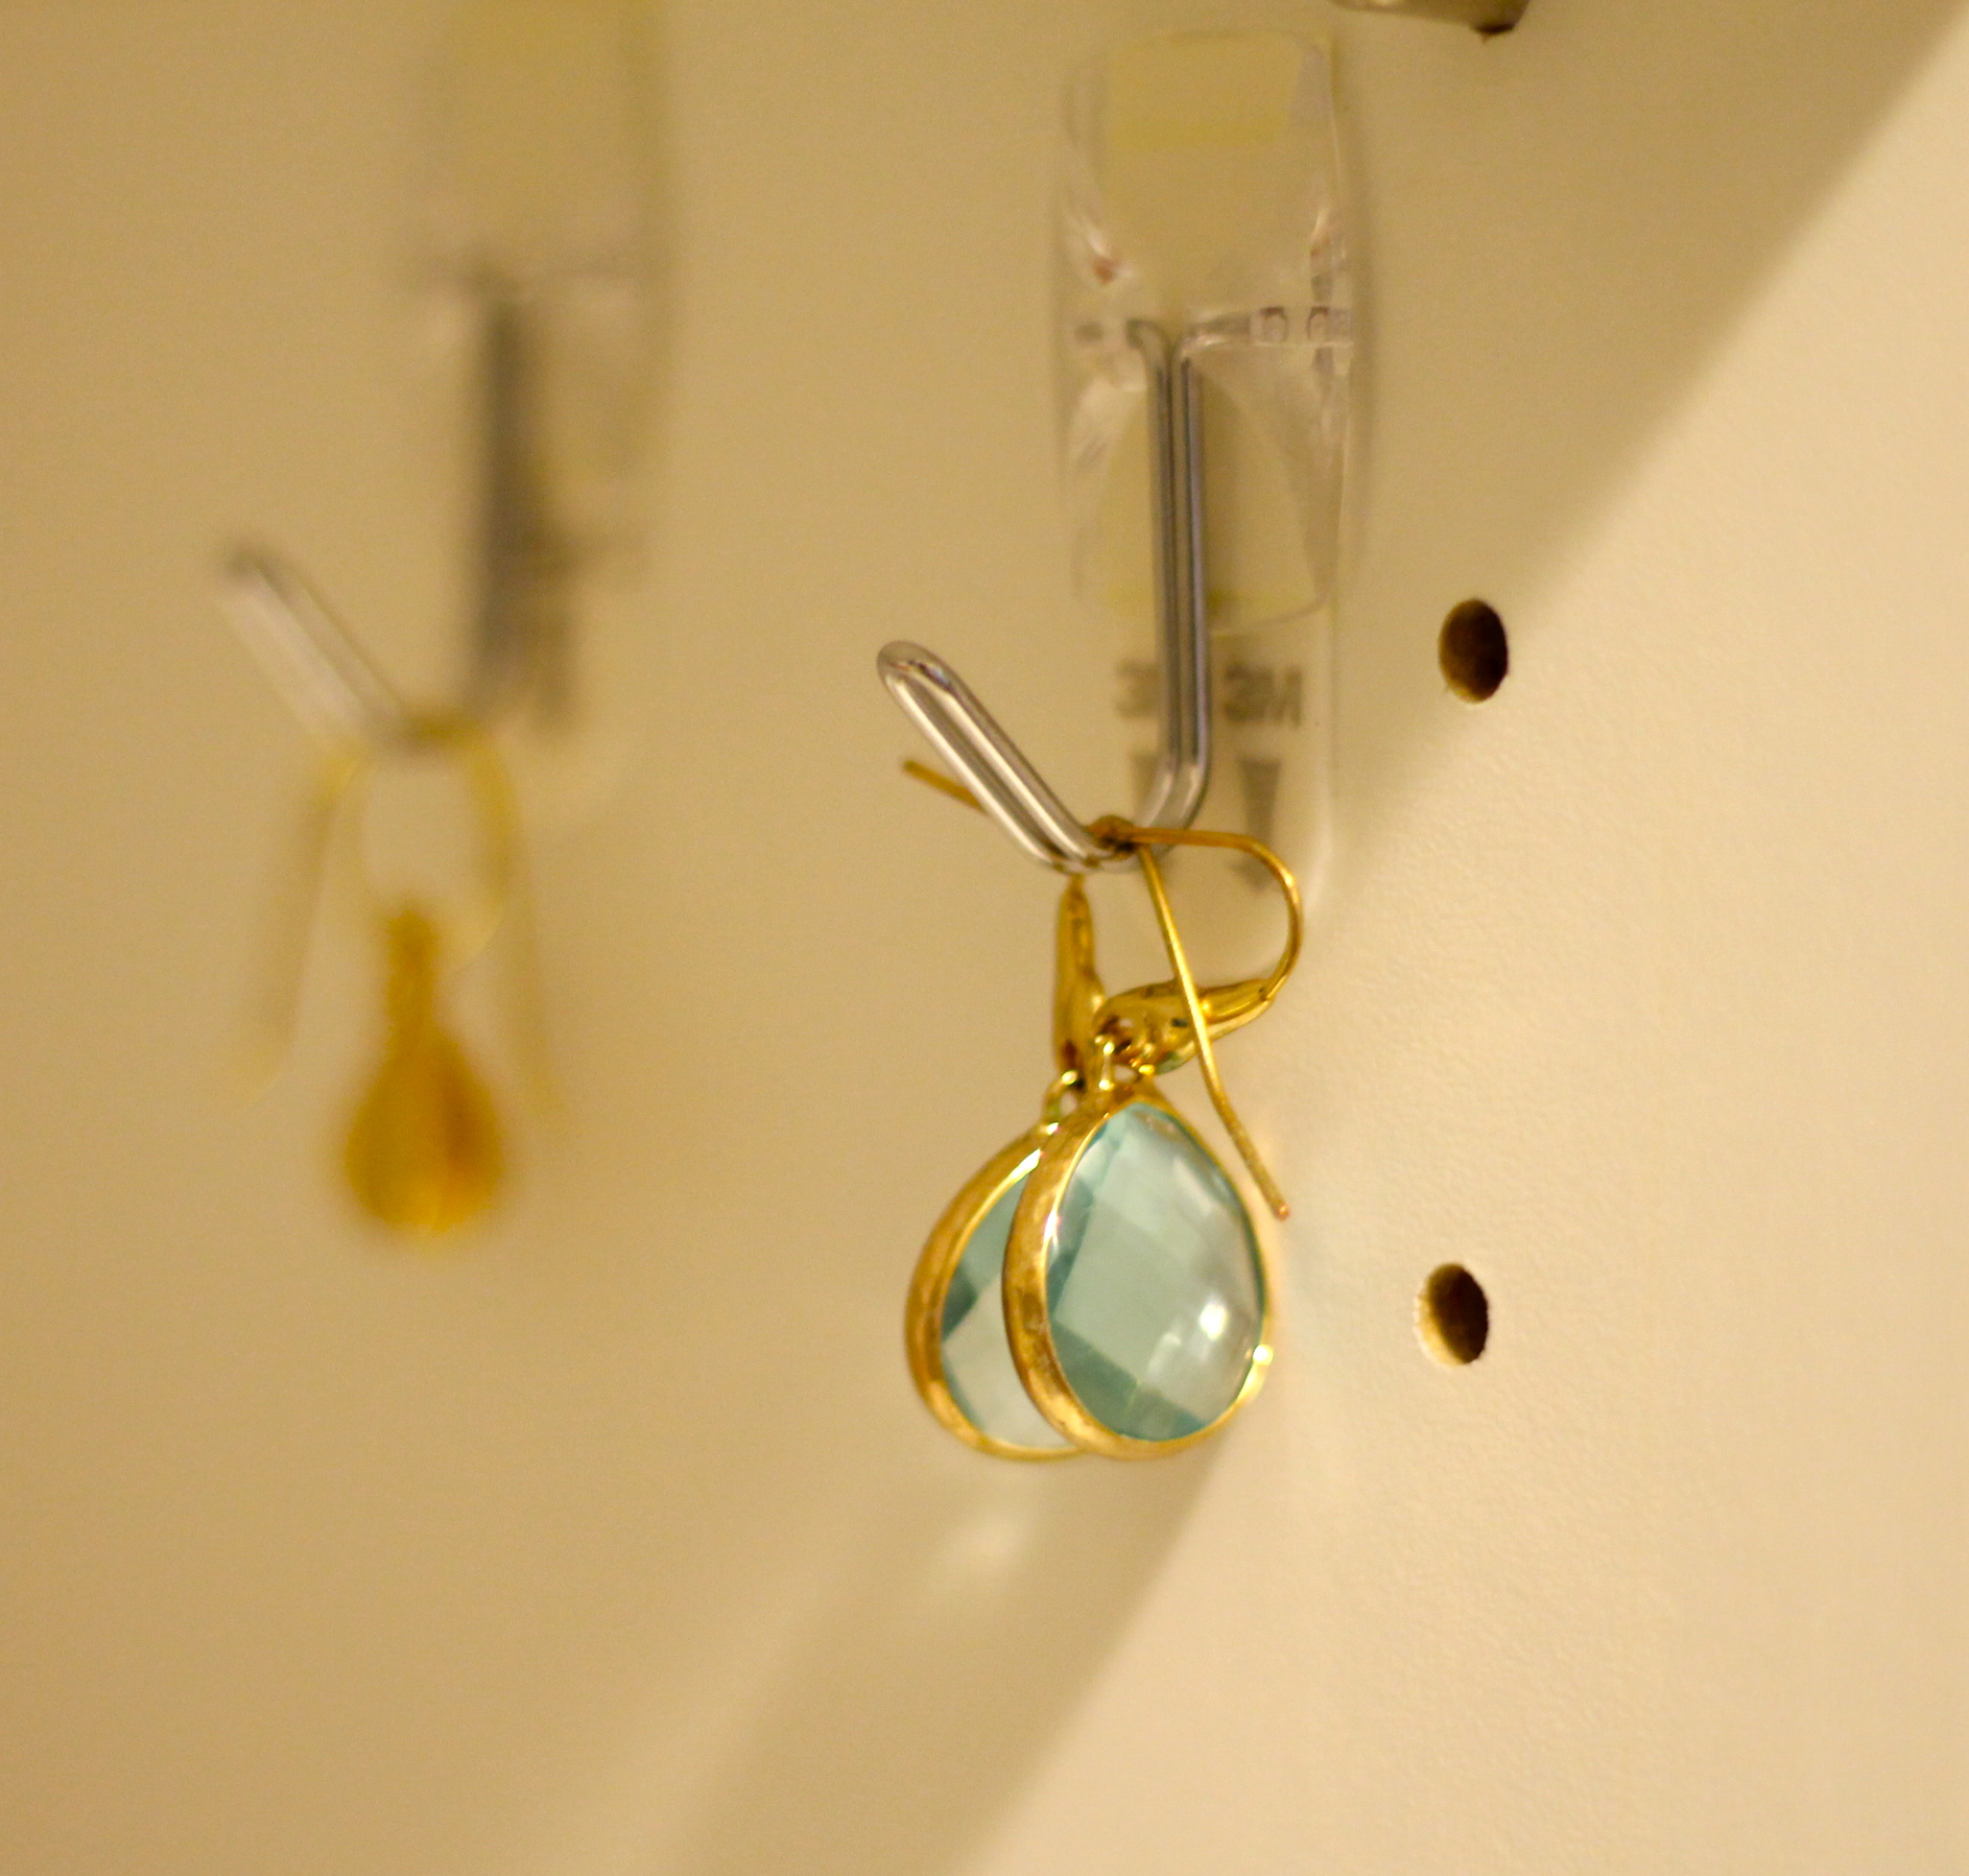 IMG 7615 - An Easy Way to Store Your Earrings